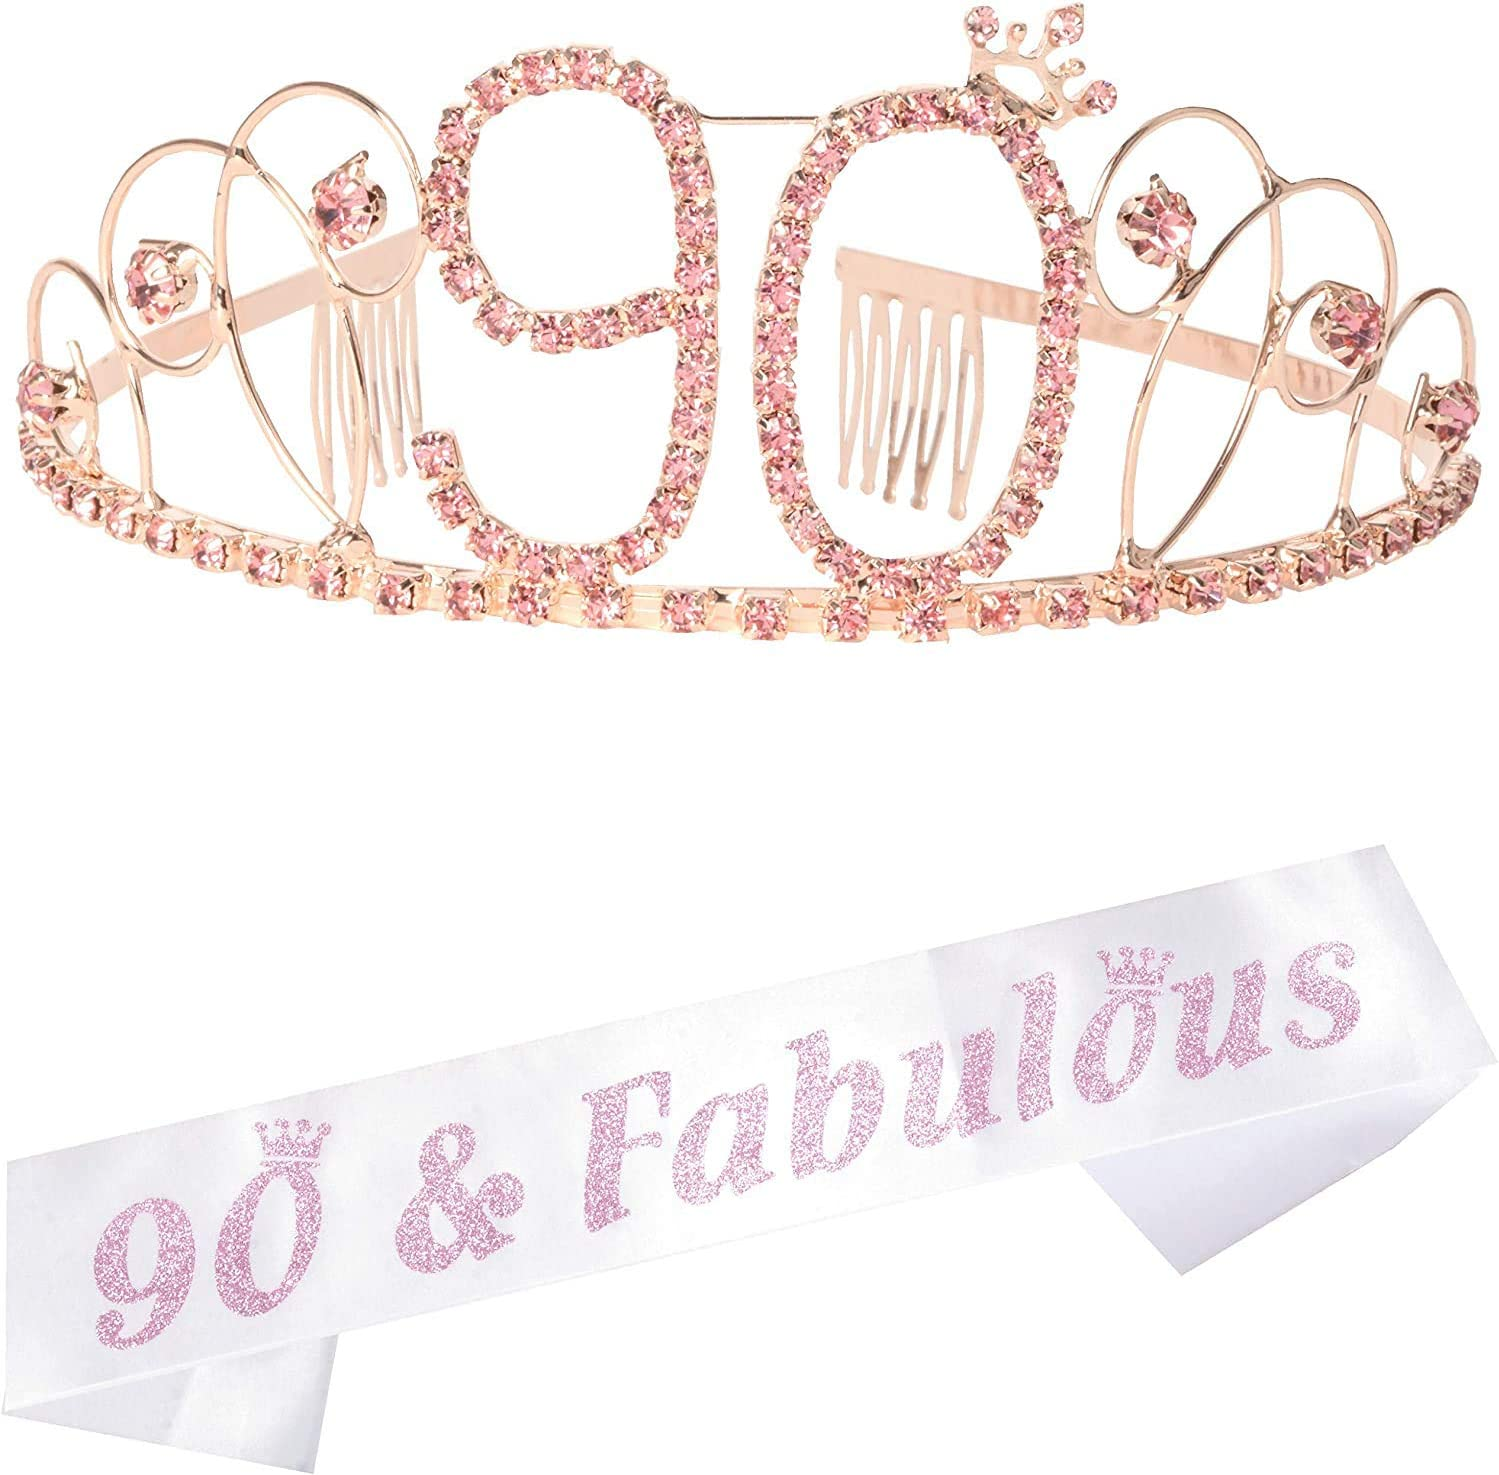 90th Brithday Gold Tiara and Sash 90 /& Fabulous Glitter Satin Sash and Crystal Rhinestone Birthday Crown for Happy 90th Birthday Party Supplies Favors Decorations 90th Birthday Cake Topper